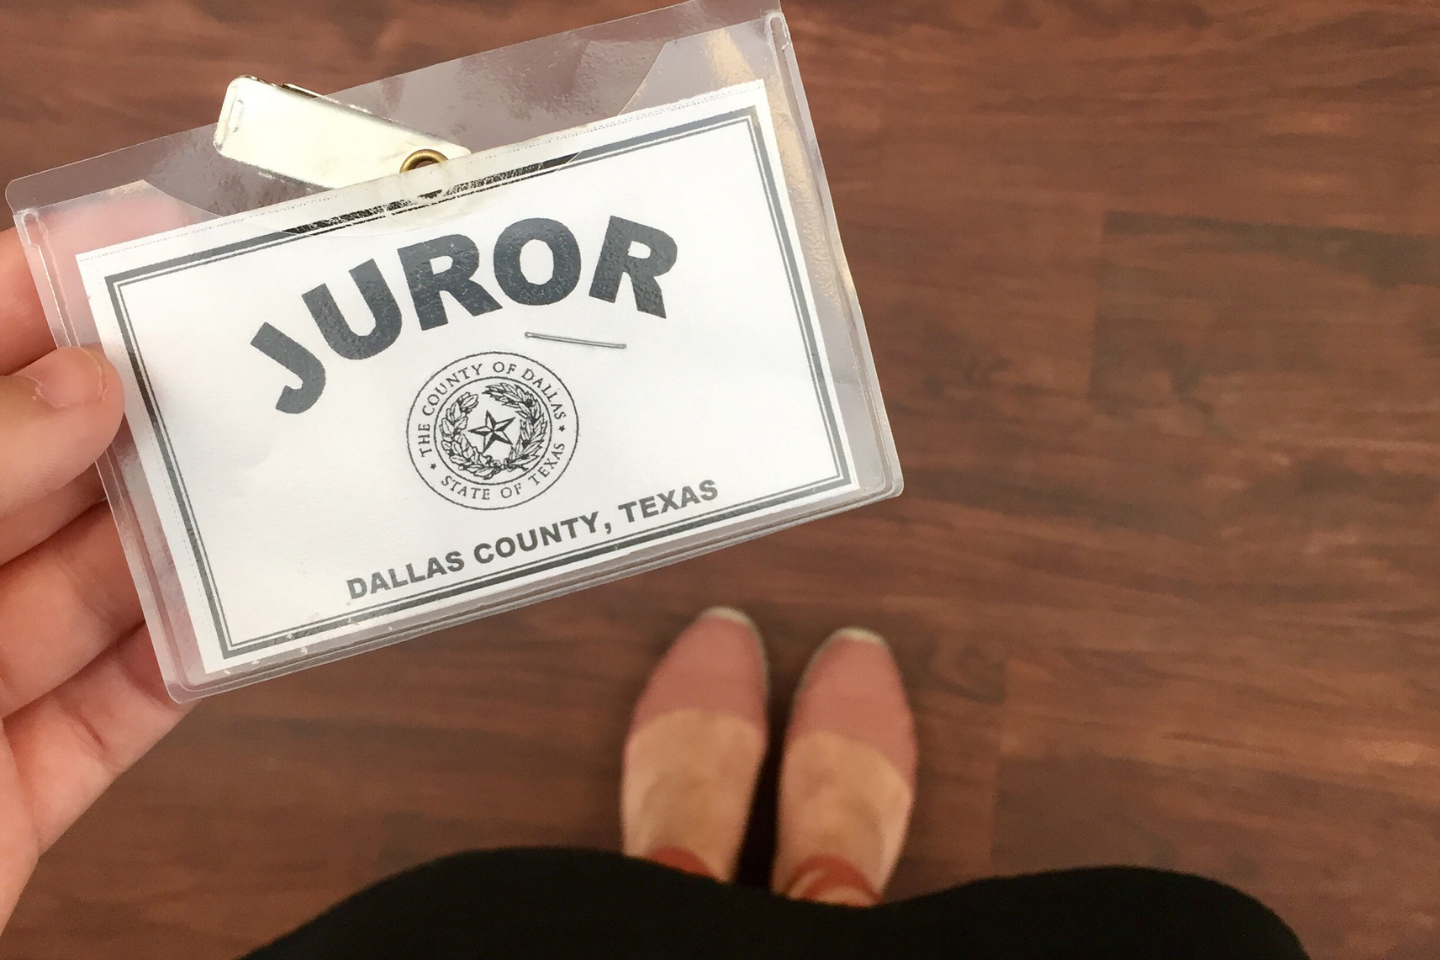 Jury Duty: Weirdest Social Experiment I've Ever Done